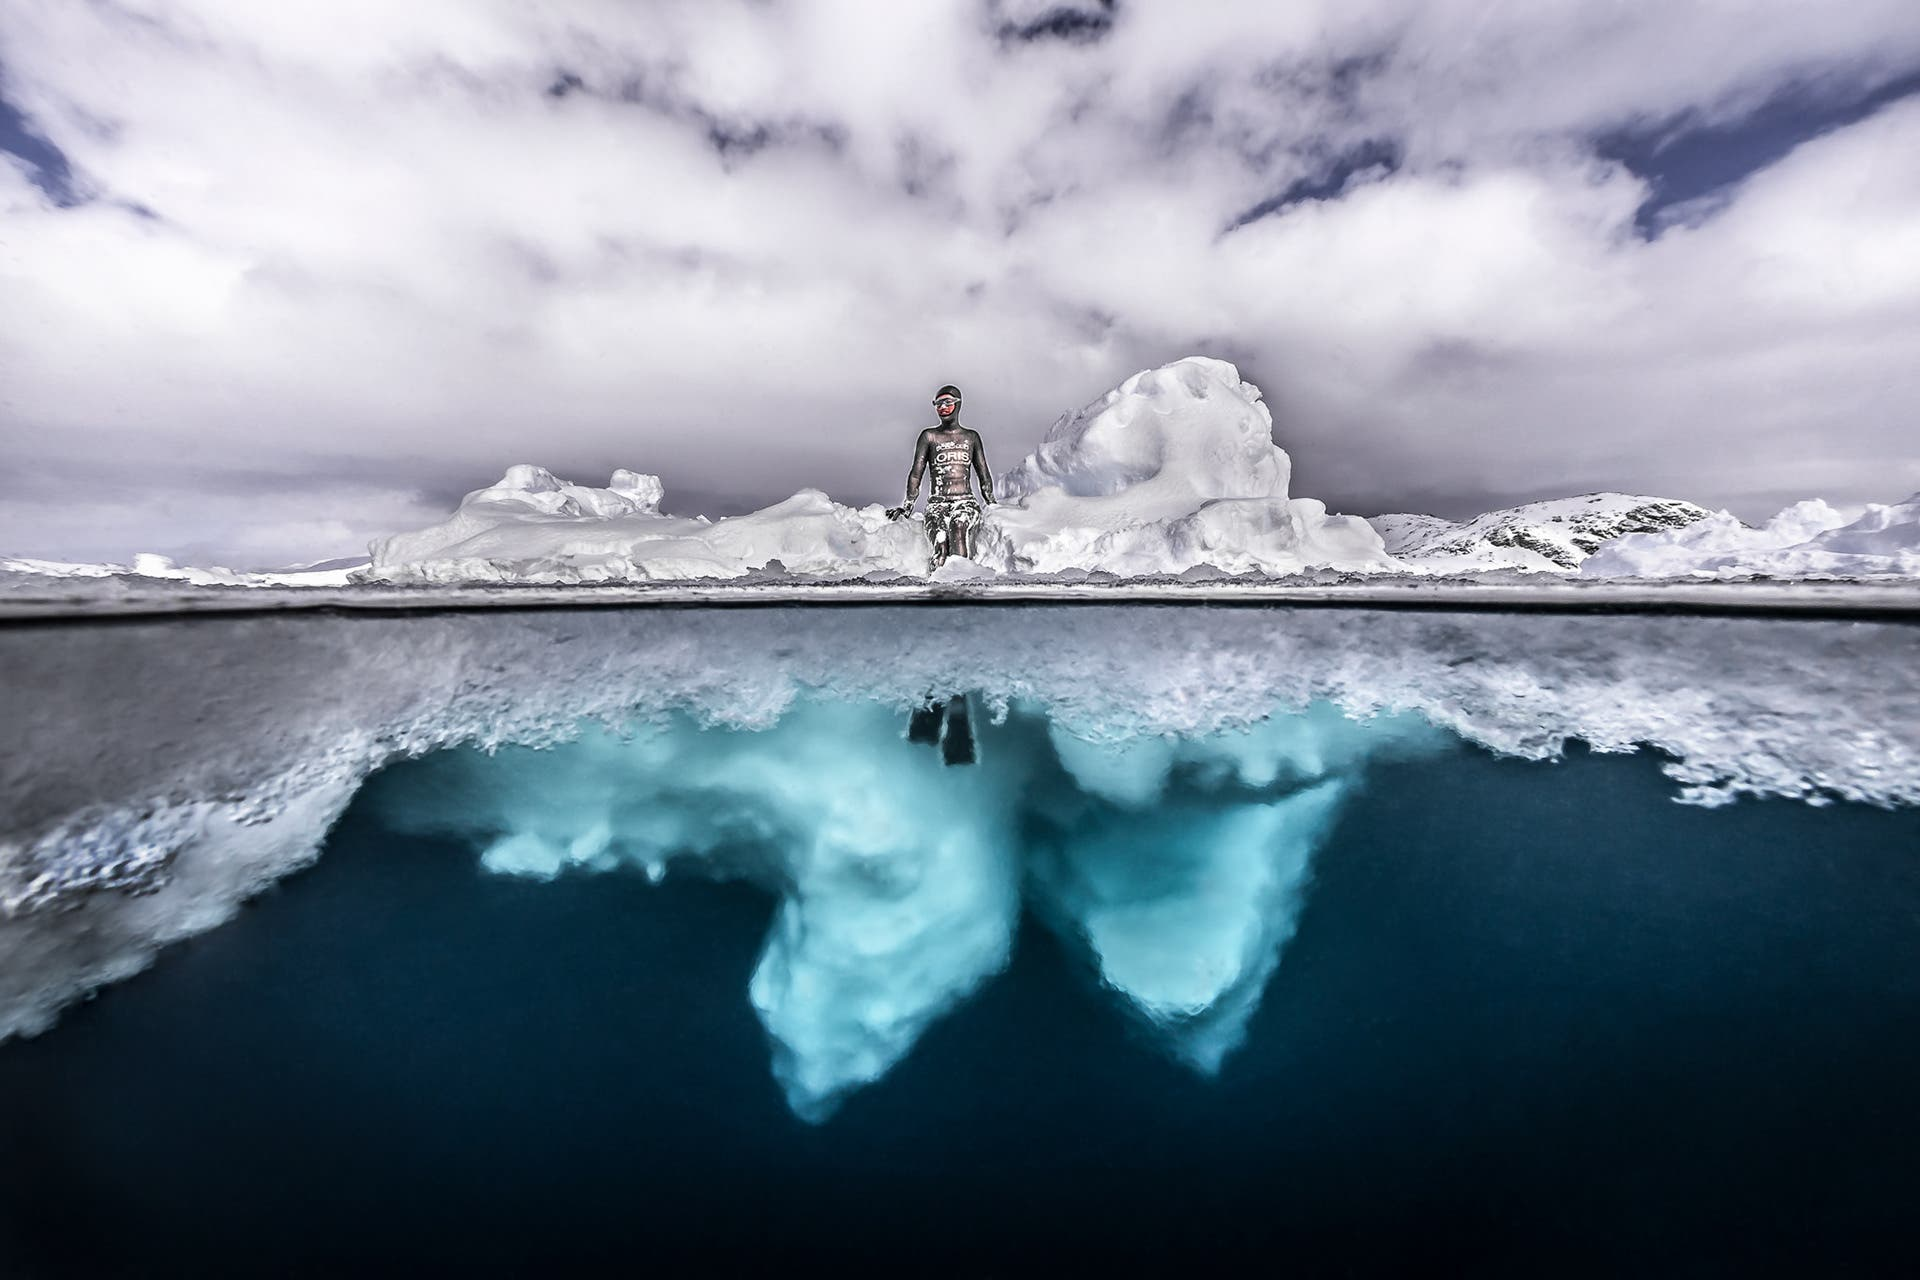 Tobias Friedrich Reveals Greenland's Stunning Shades of Water and Ice